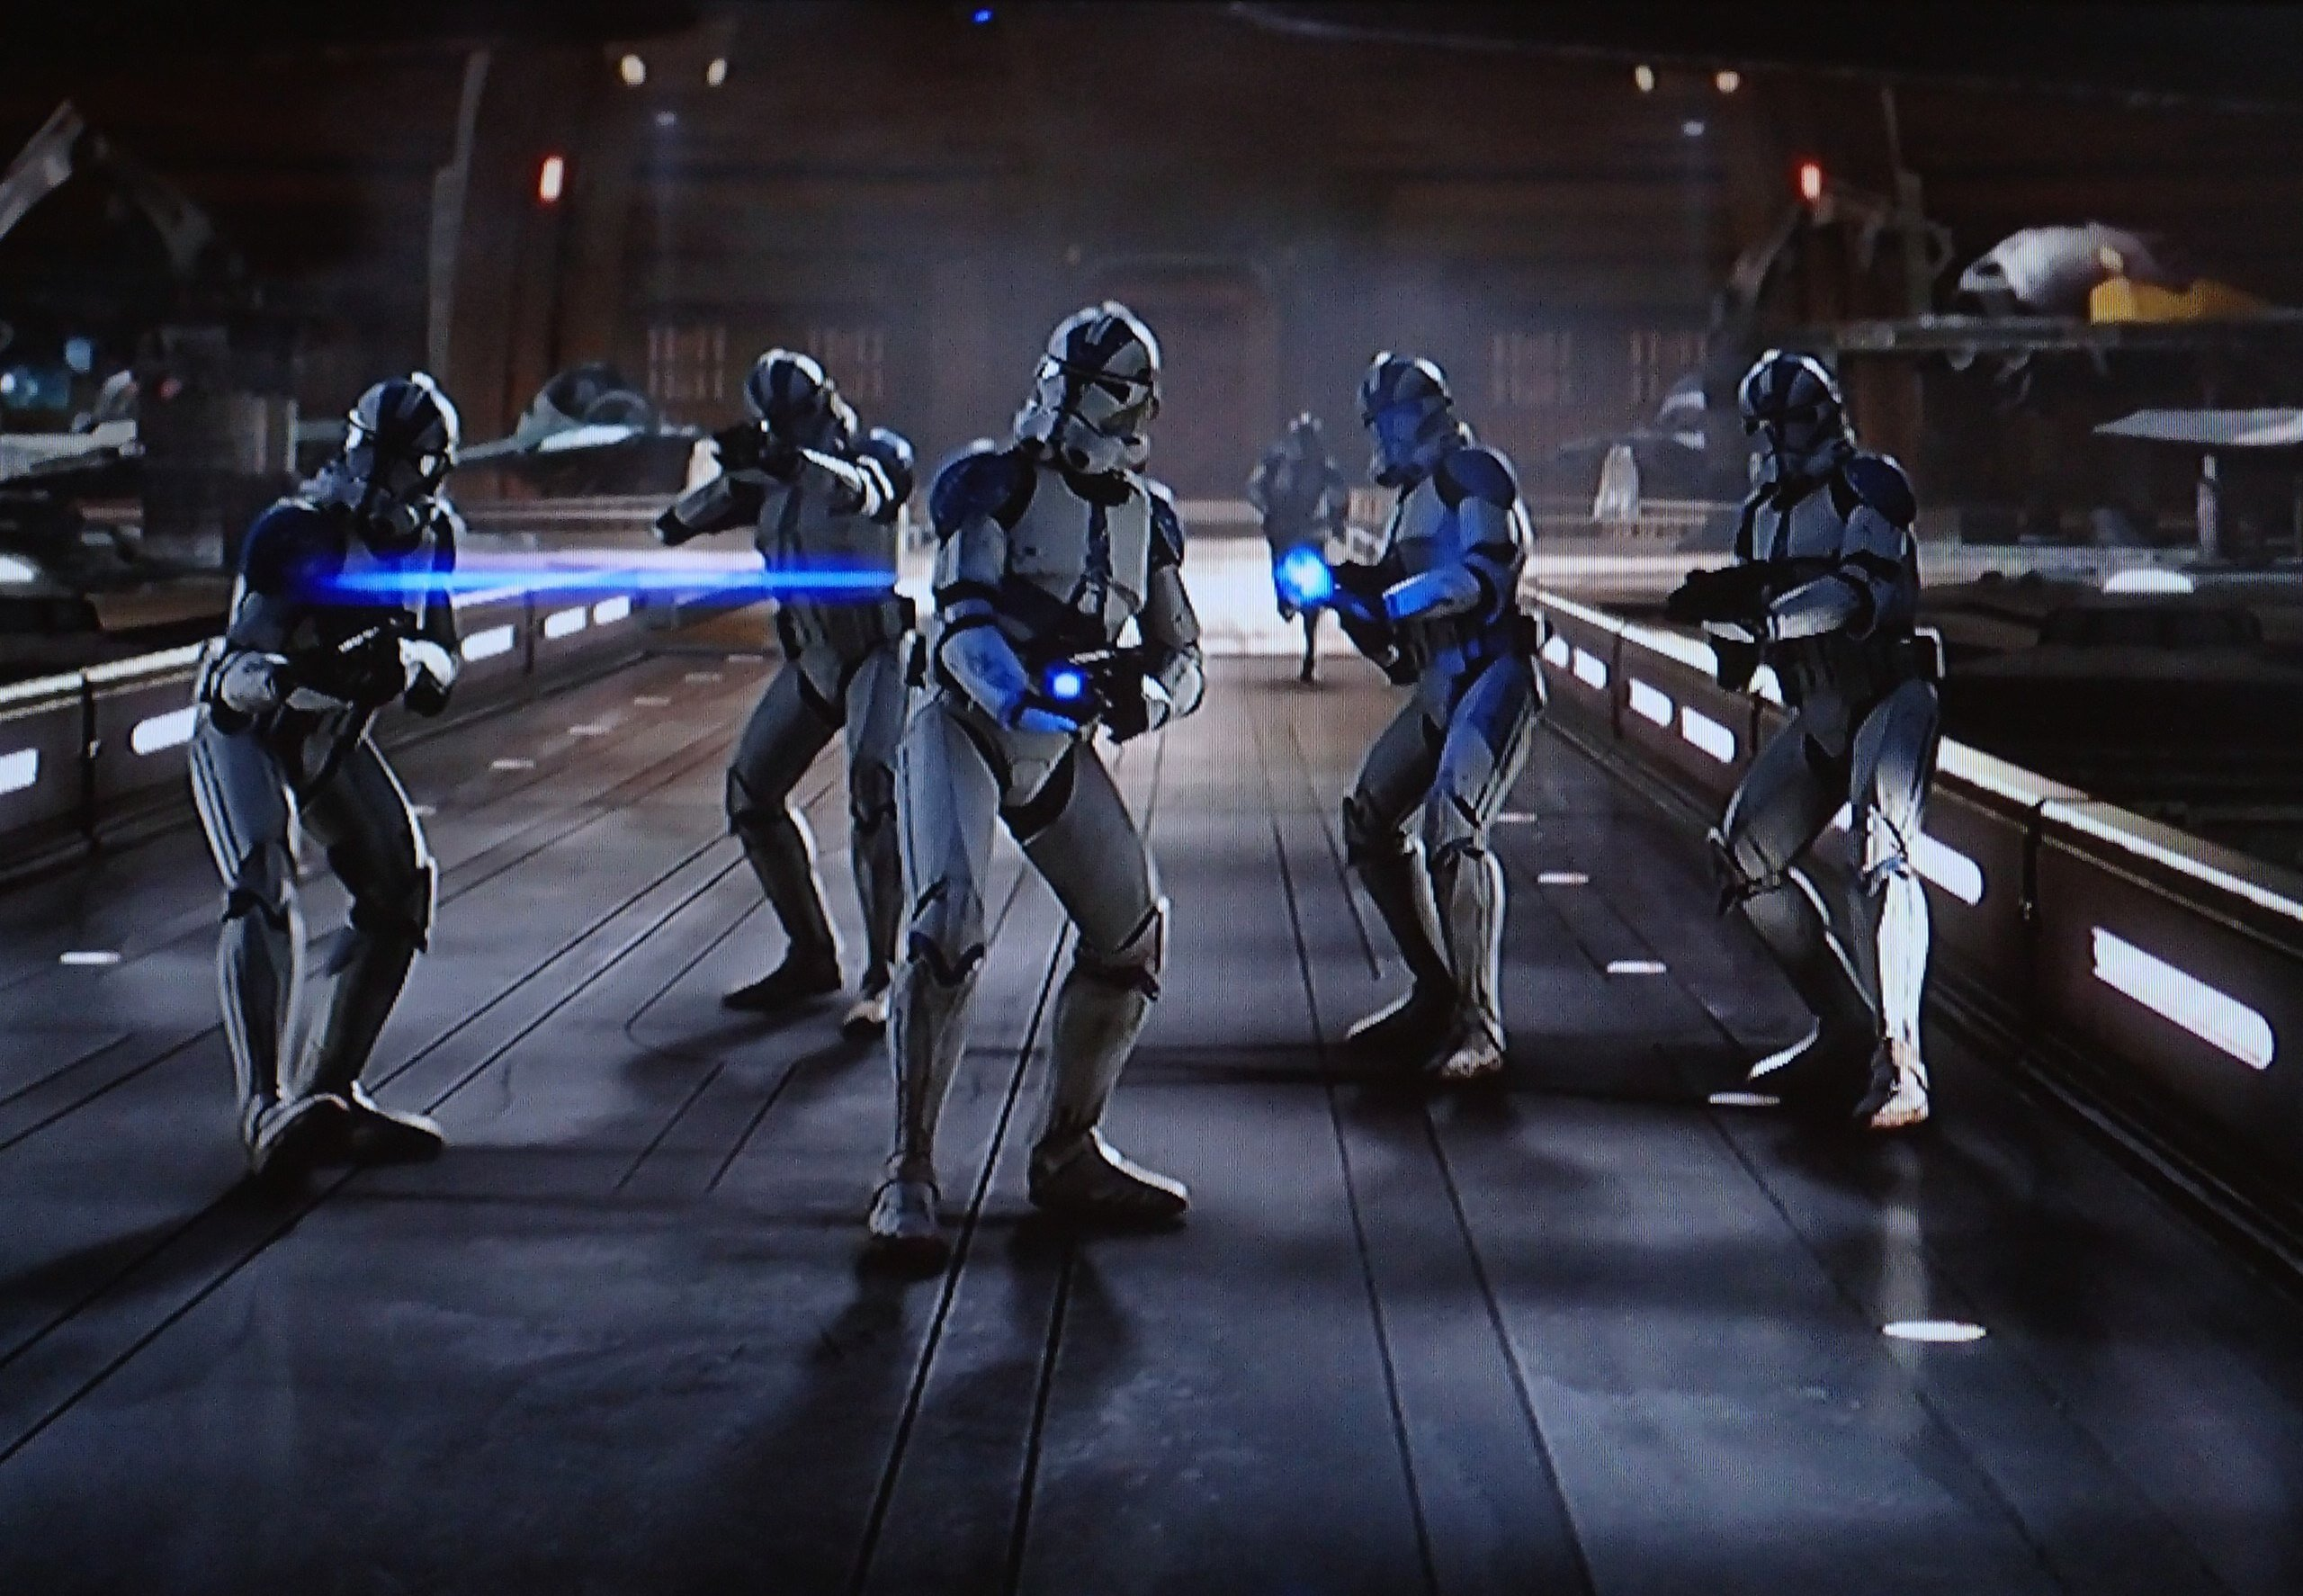 Free Download Star Wars Images Clonetroopers Hd Wallpaper